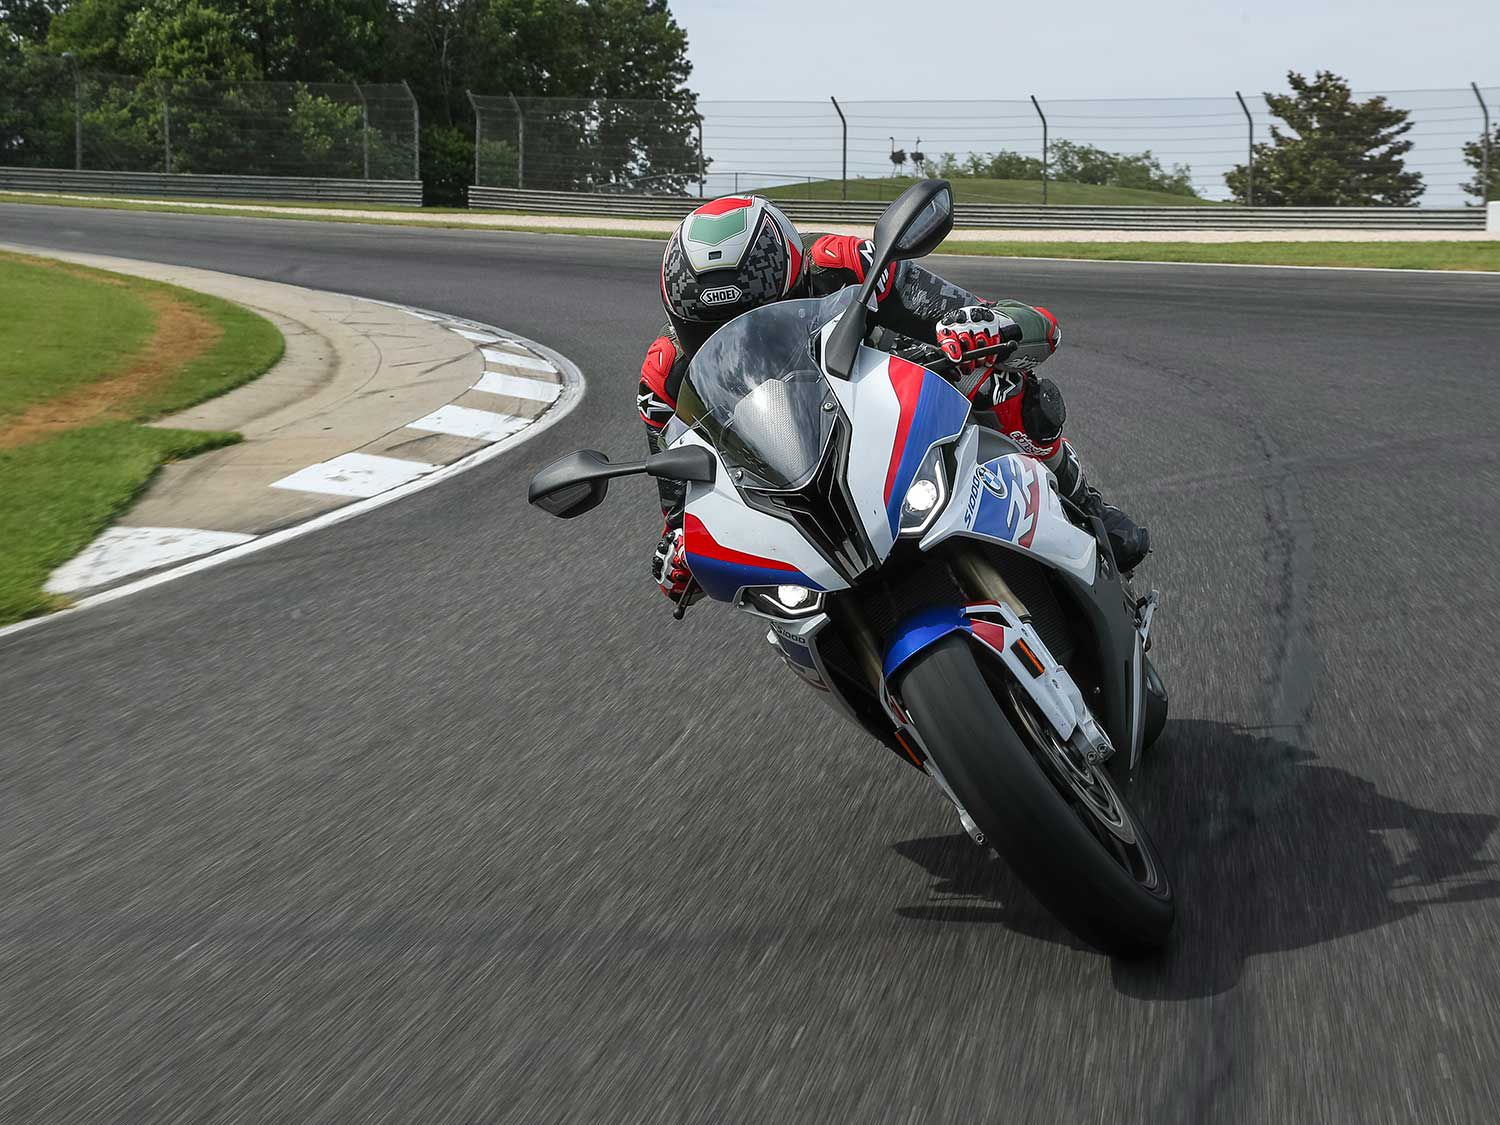 "<a  href=""https://www.motorcyclistonline.com/2020-bmw-s-1000-rr-first-ride-review/"">2020 BMW S 1000 RR Review</a>"